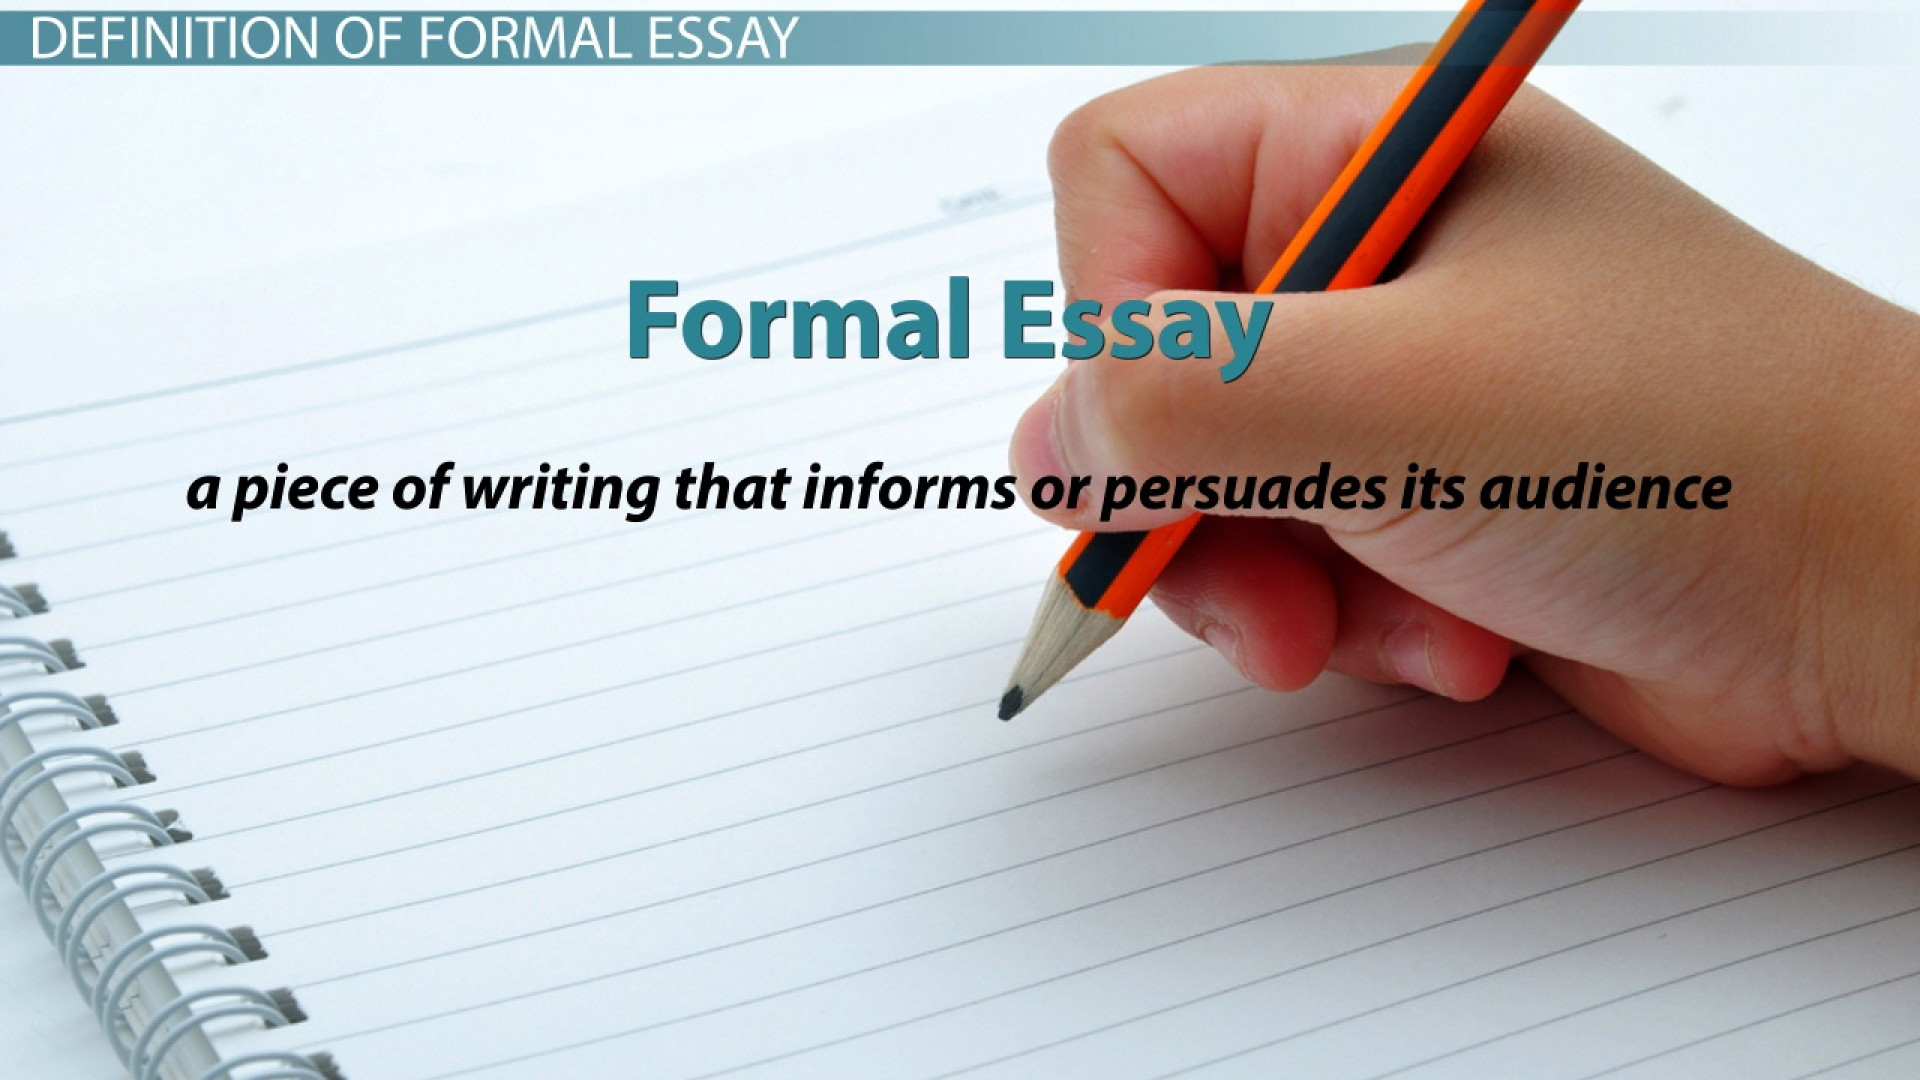 009 Essay Example What Is Formal  Definition Examples 111863 Impressive A Analysis Academic Analytical1920